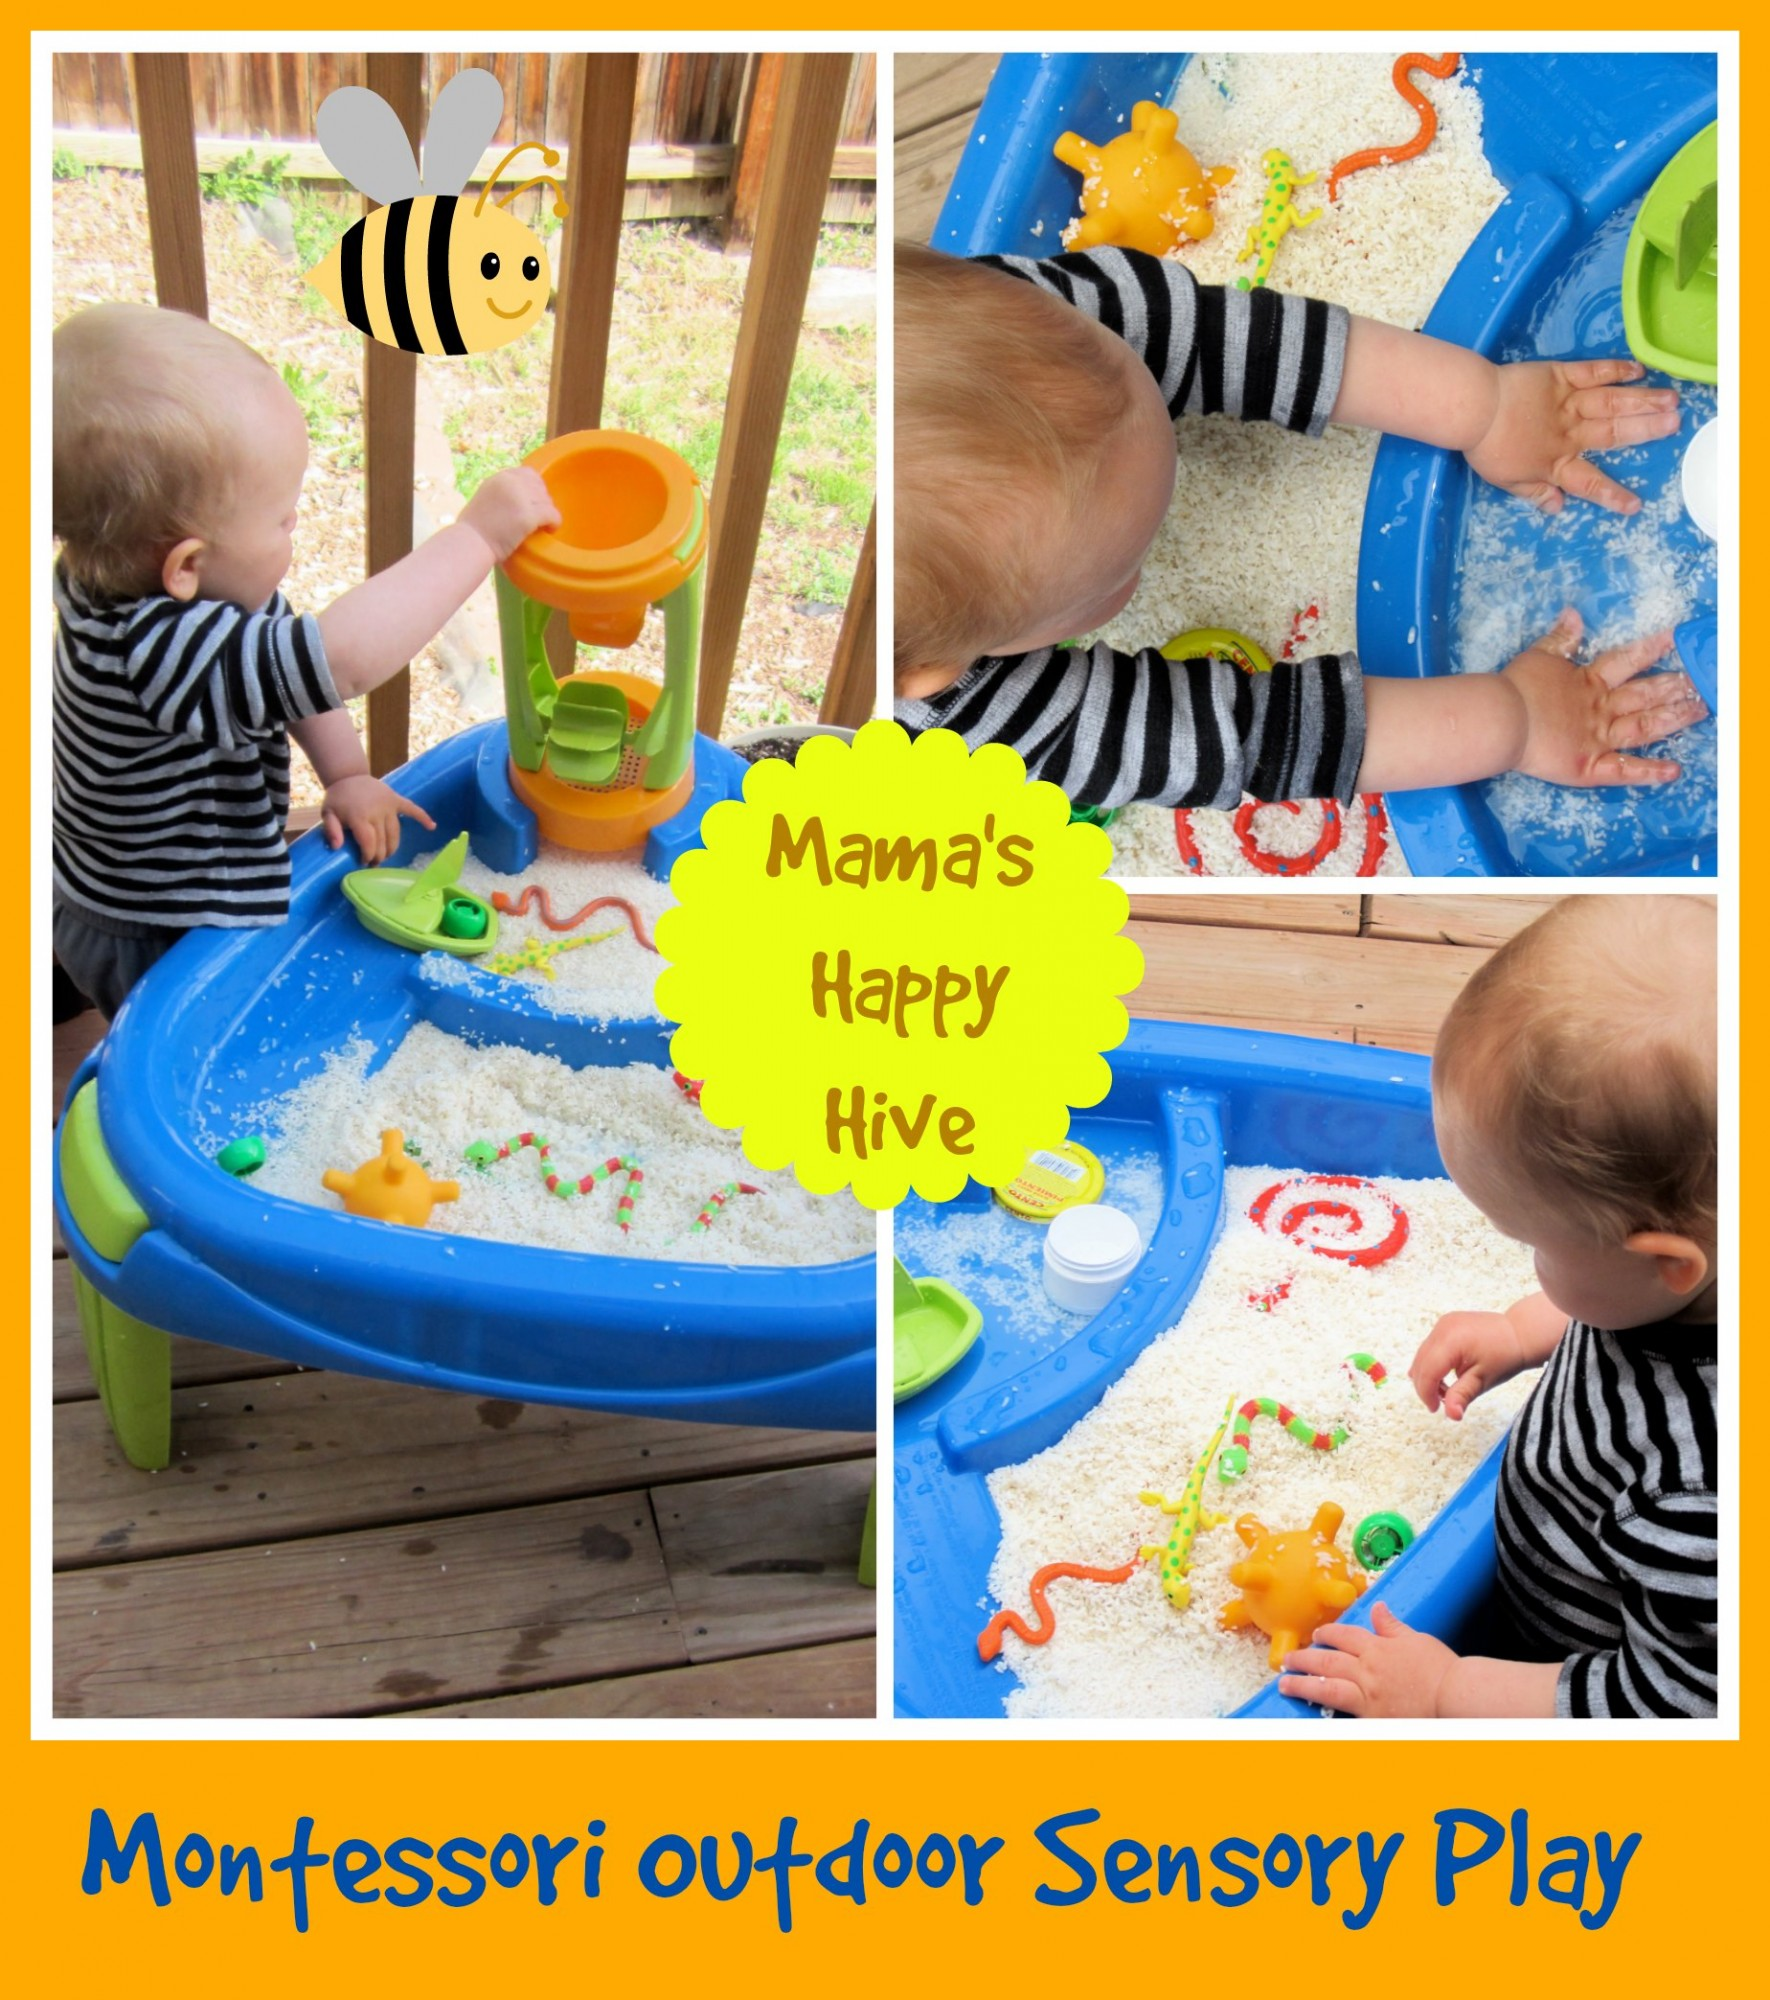 Our daily Montessori routine at 16 months of age. www.mamashappyhive.com